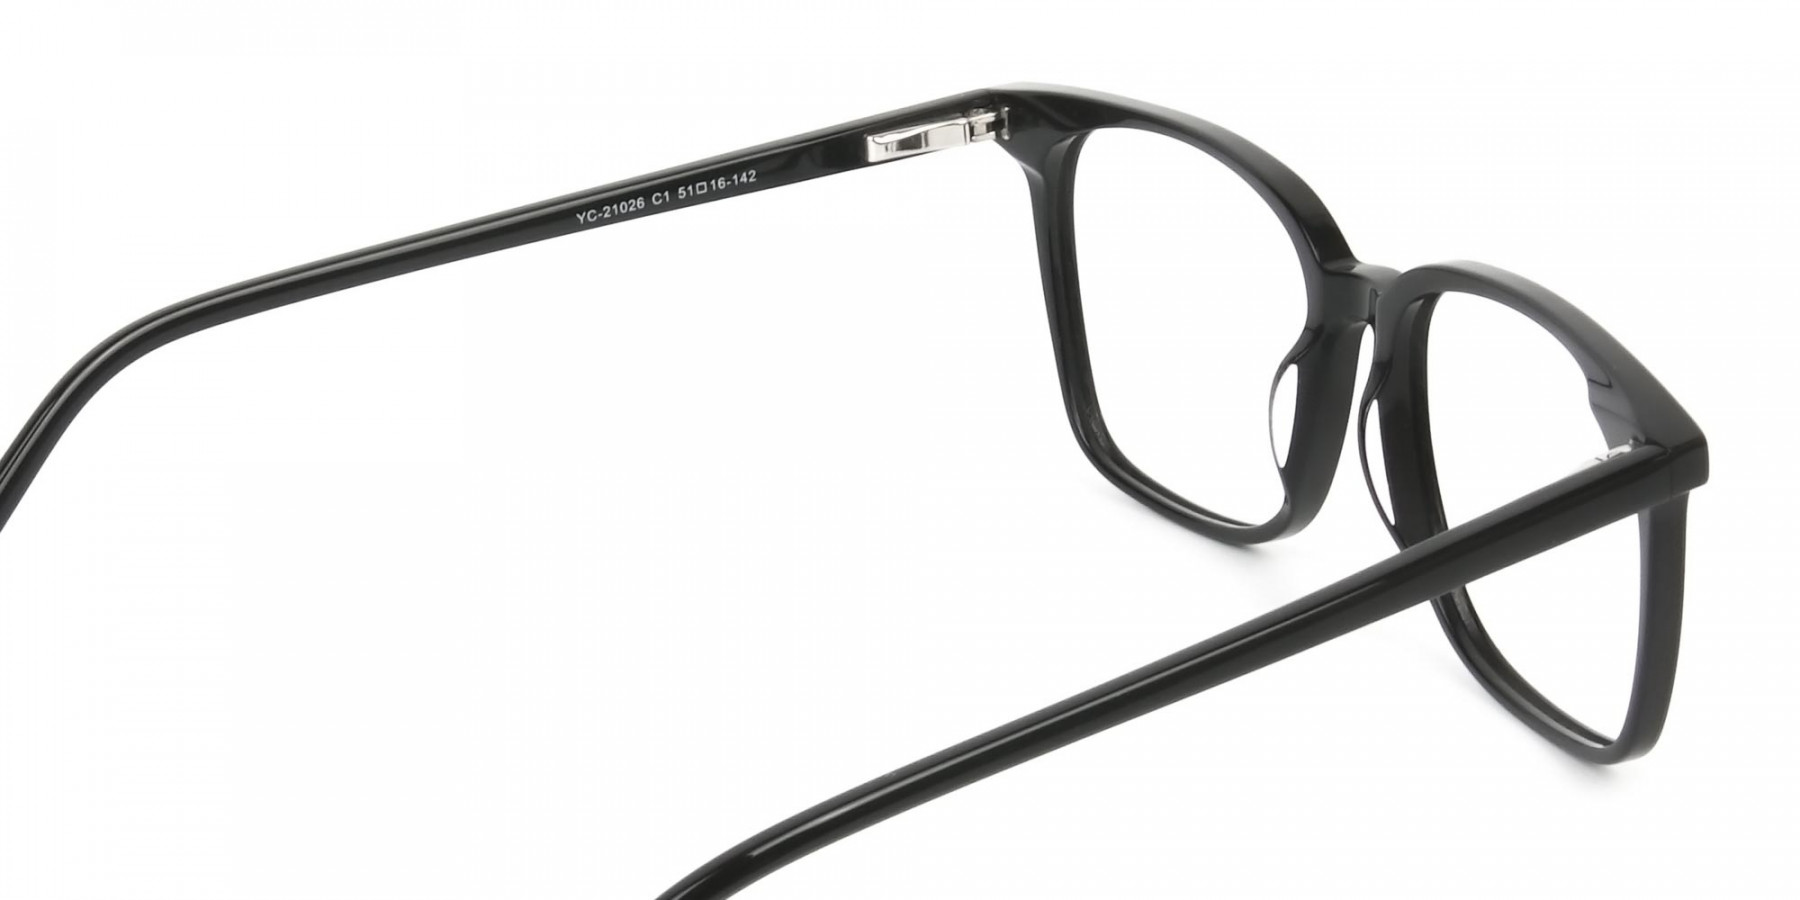 Wayfarer and Square Glasses in Black - 1